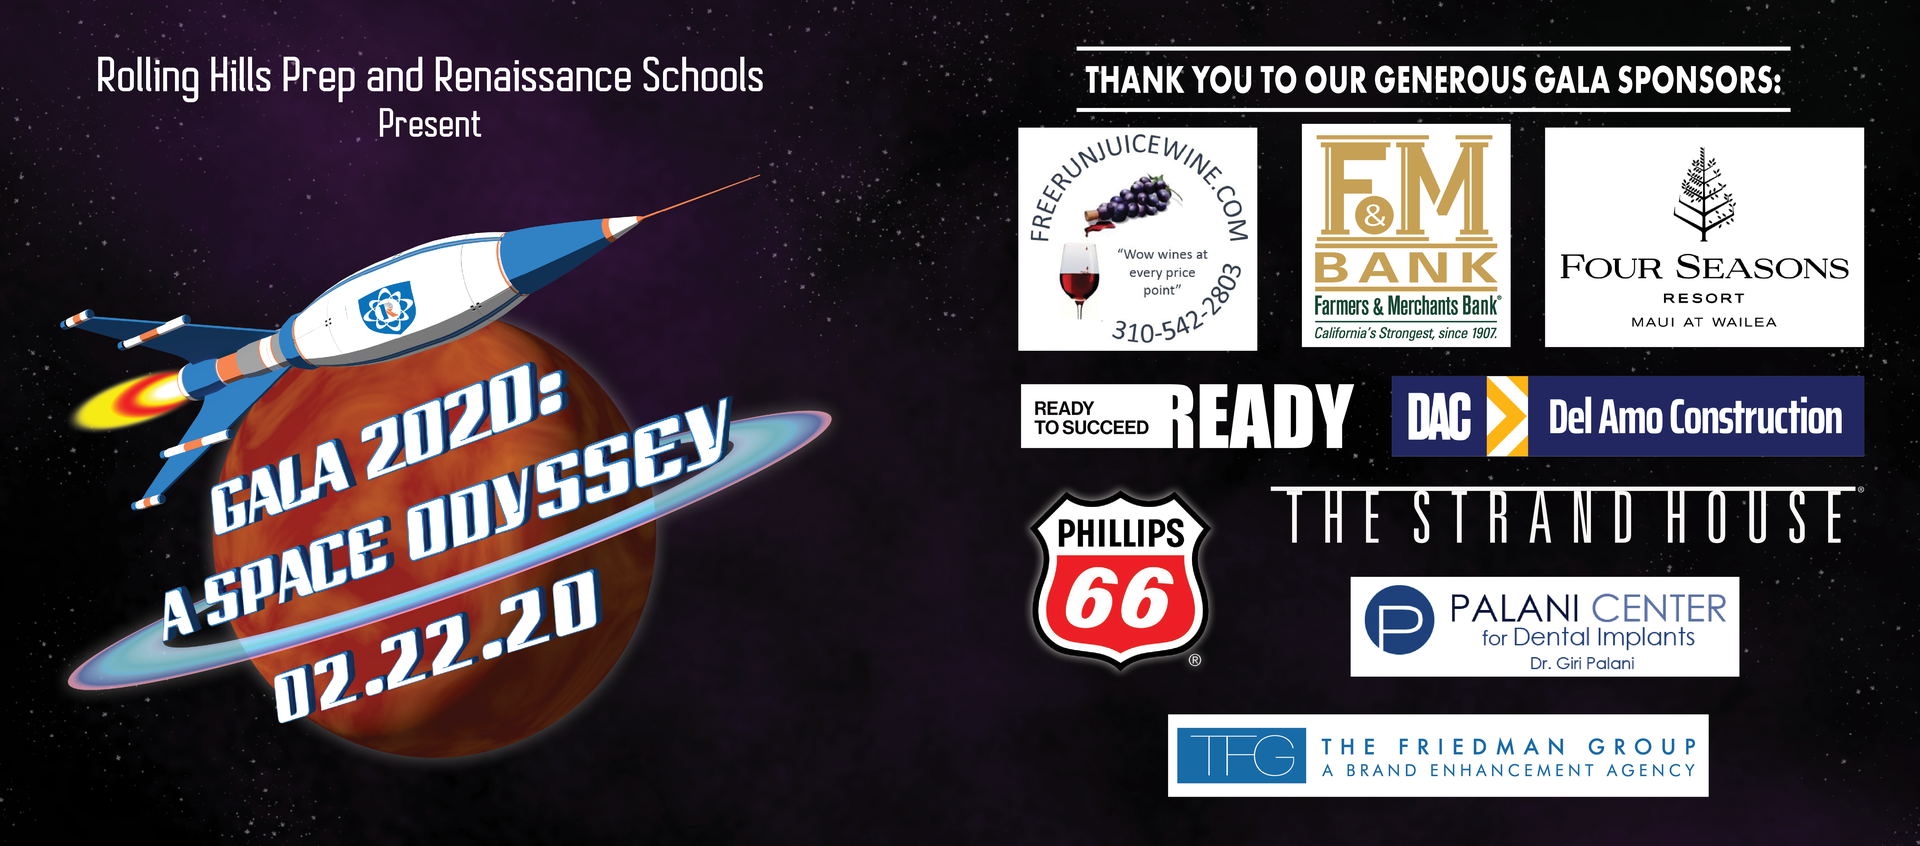 Gala 2020: A Space Odyssey - Thank You To Our Generous Gala Sponsors - Free Run Juice - F&M Bank - Four Seasons Resort, Maui at Wailea - Ready To Succeed - DAC: Del Amo Construction - The Strand House - Palani Center for Dental Implants - The Friedman Group